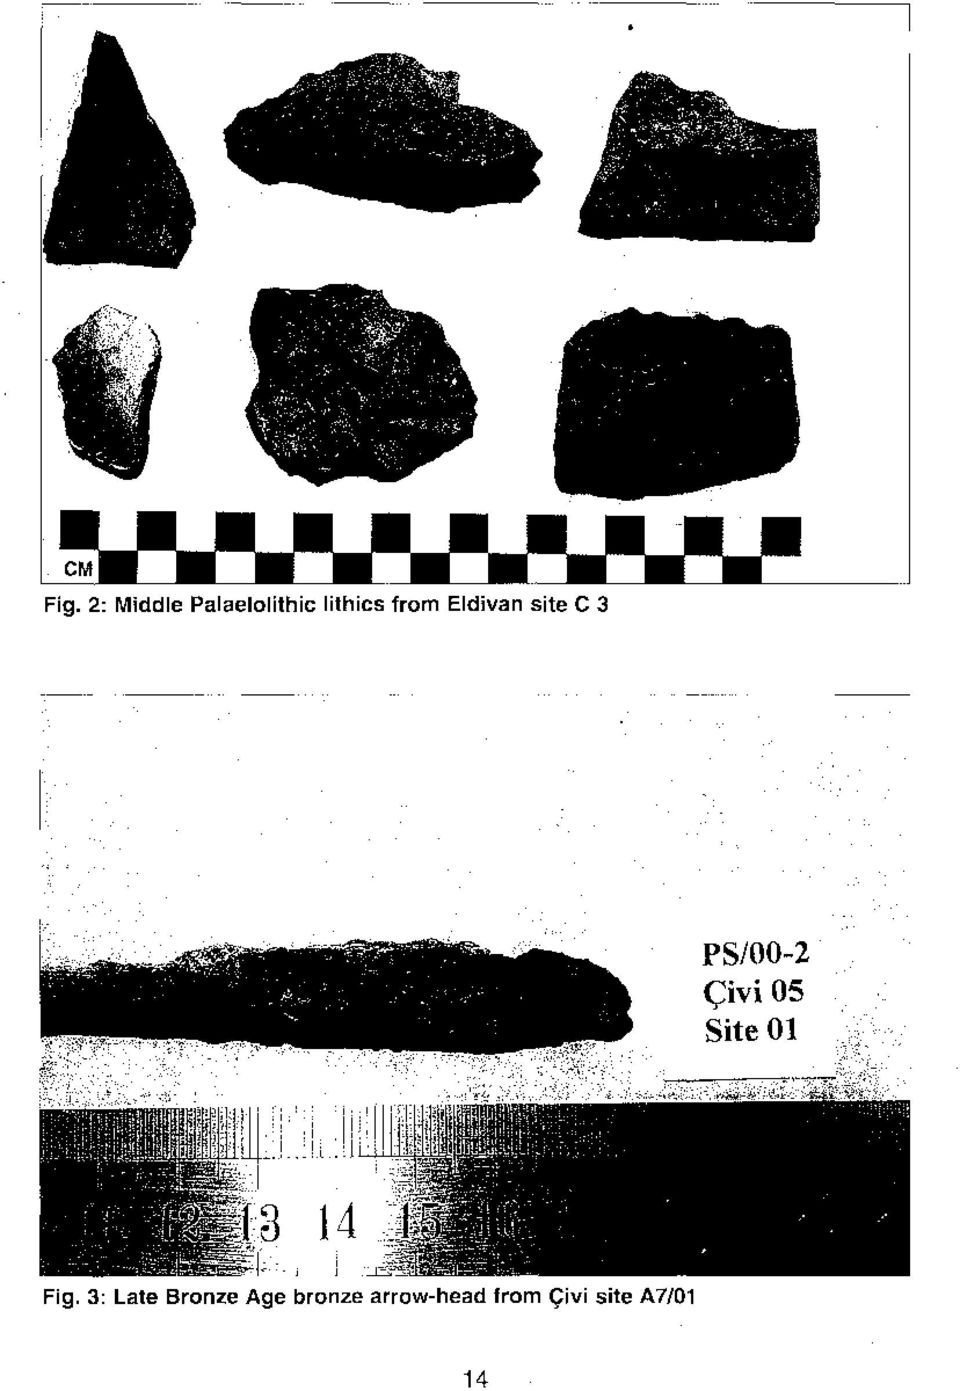 Fig. 3: Late Bronze Age bronze